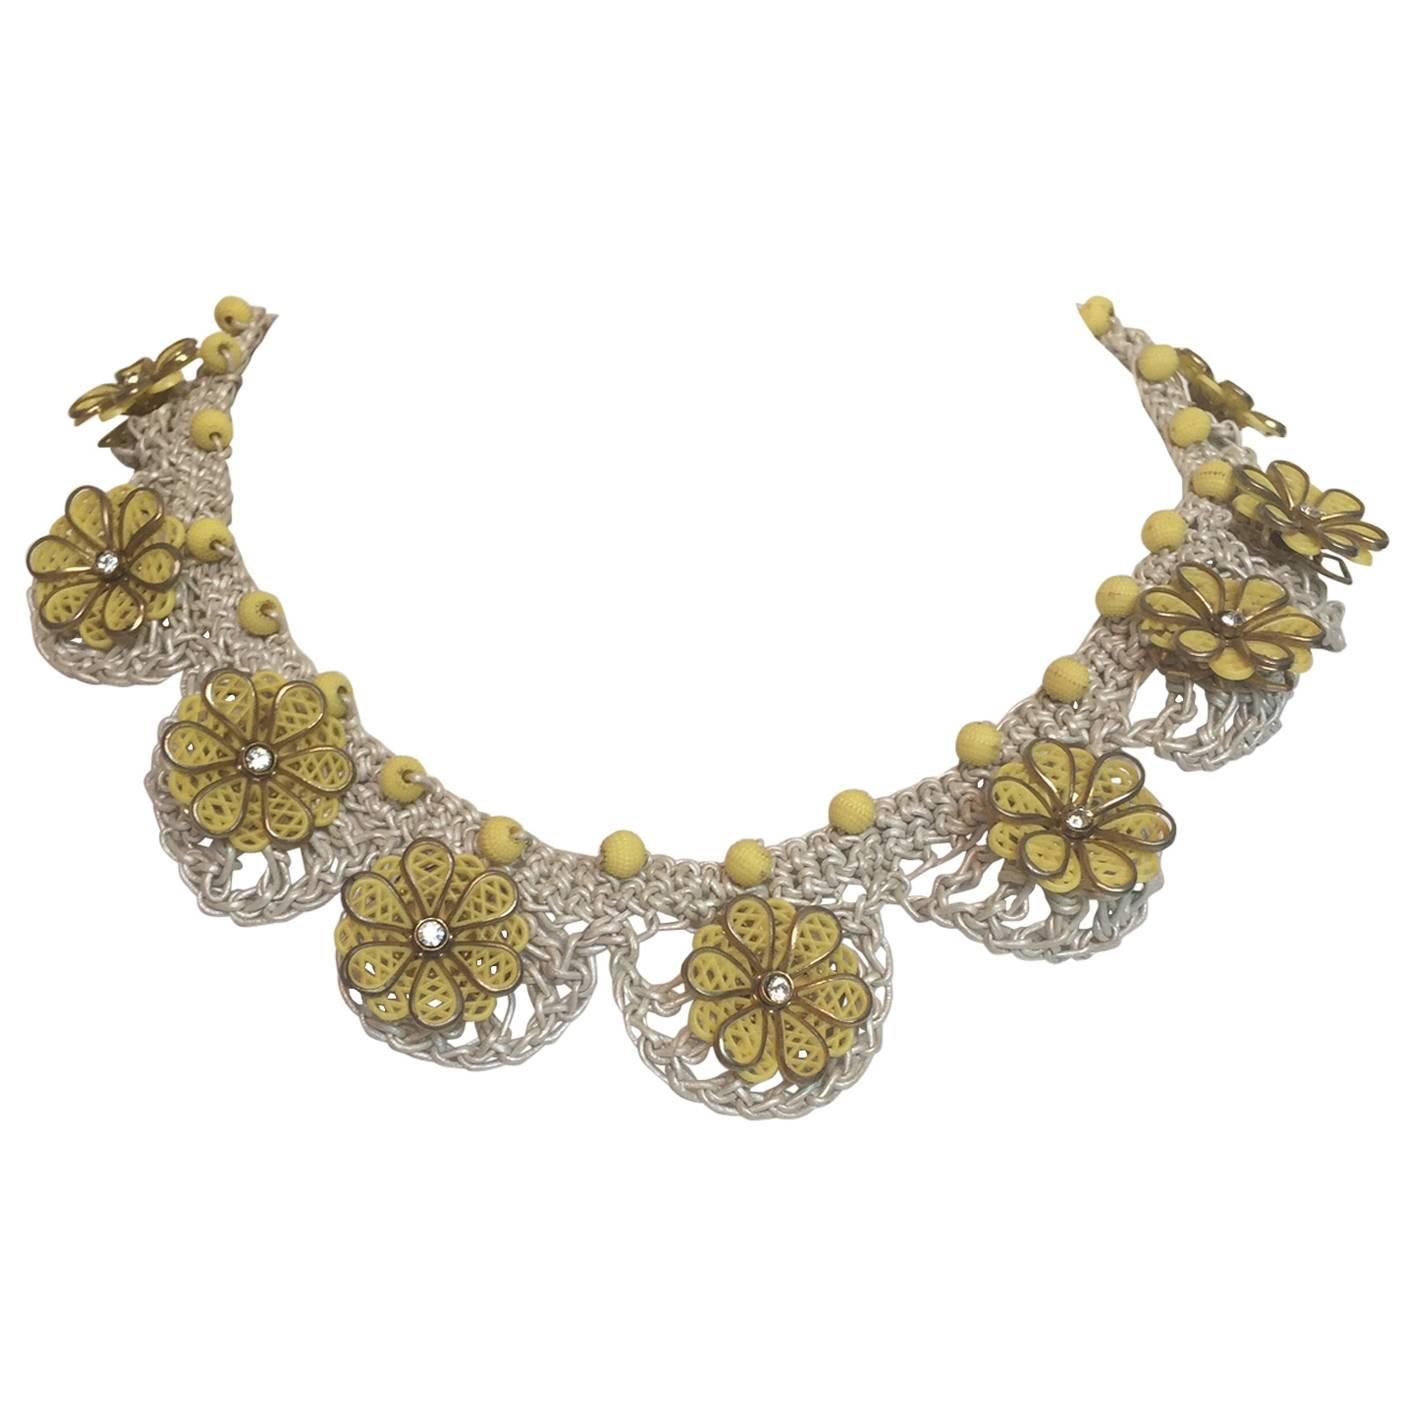 Dating Vintage Jewelry 57